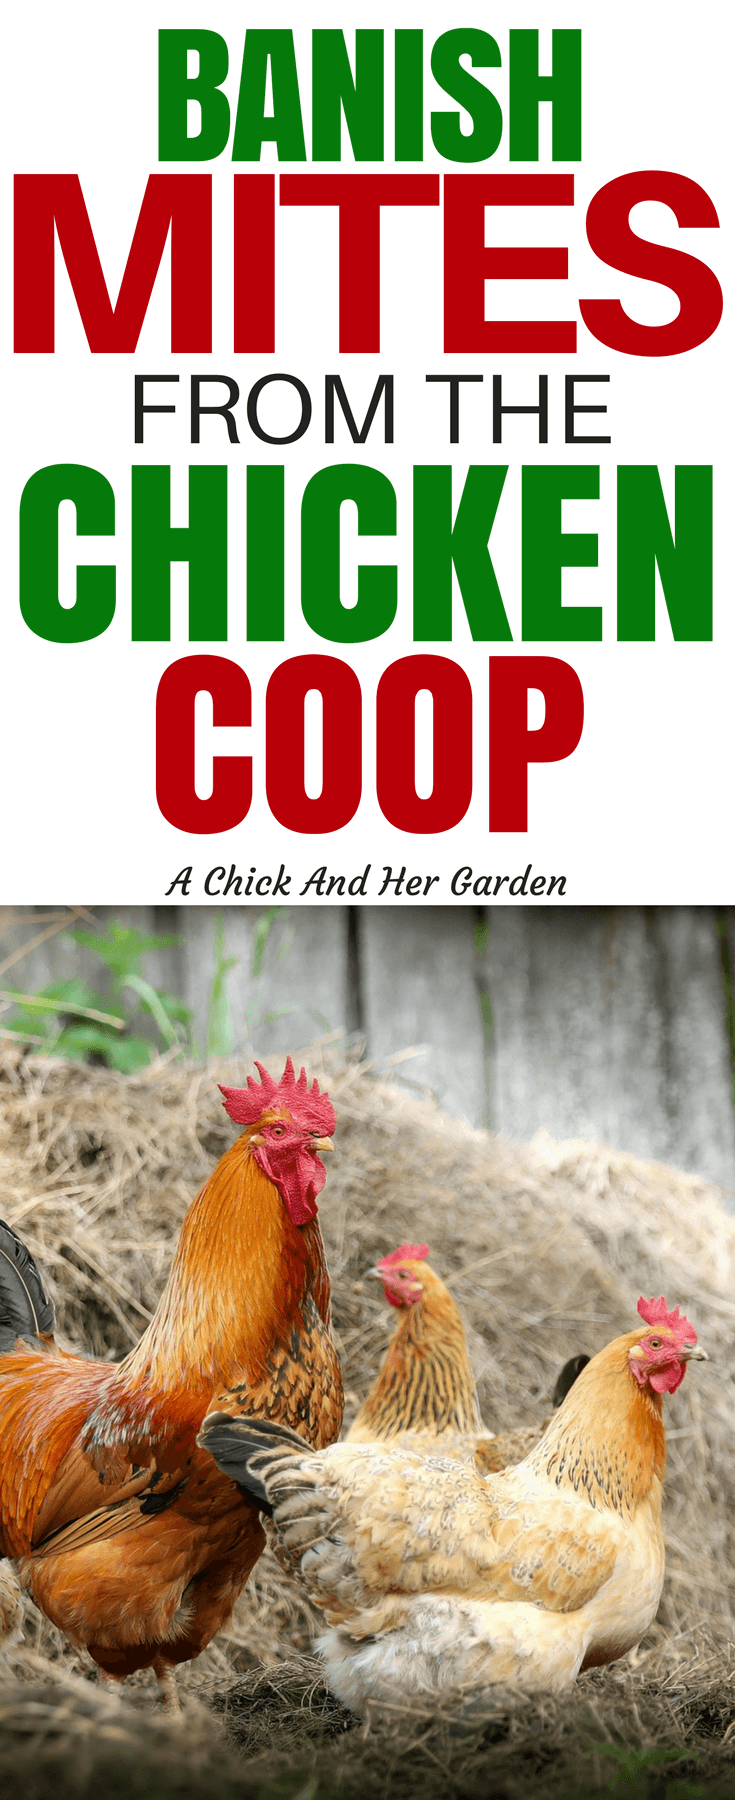 How To Treat Your Chicken Coop For Mites Chicken Coop Best Chicken Coop Raising Chickens